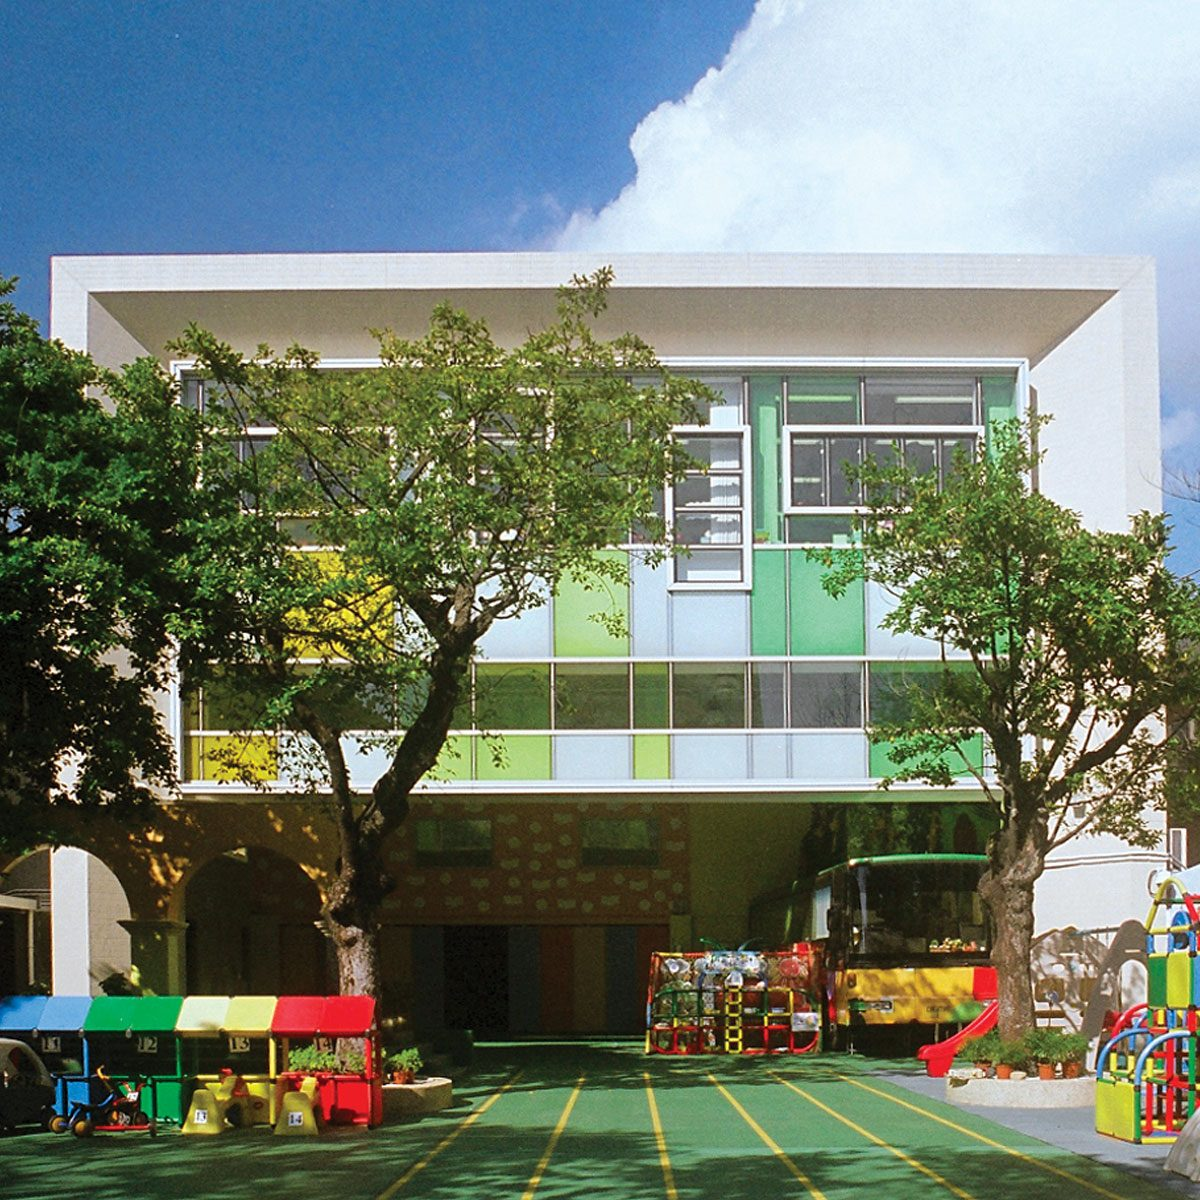 Creative Kindergarten, Institutional Development at 6 Rutland Quadrant, Kowloon Tong, Kowloon